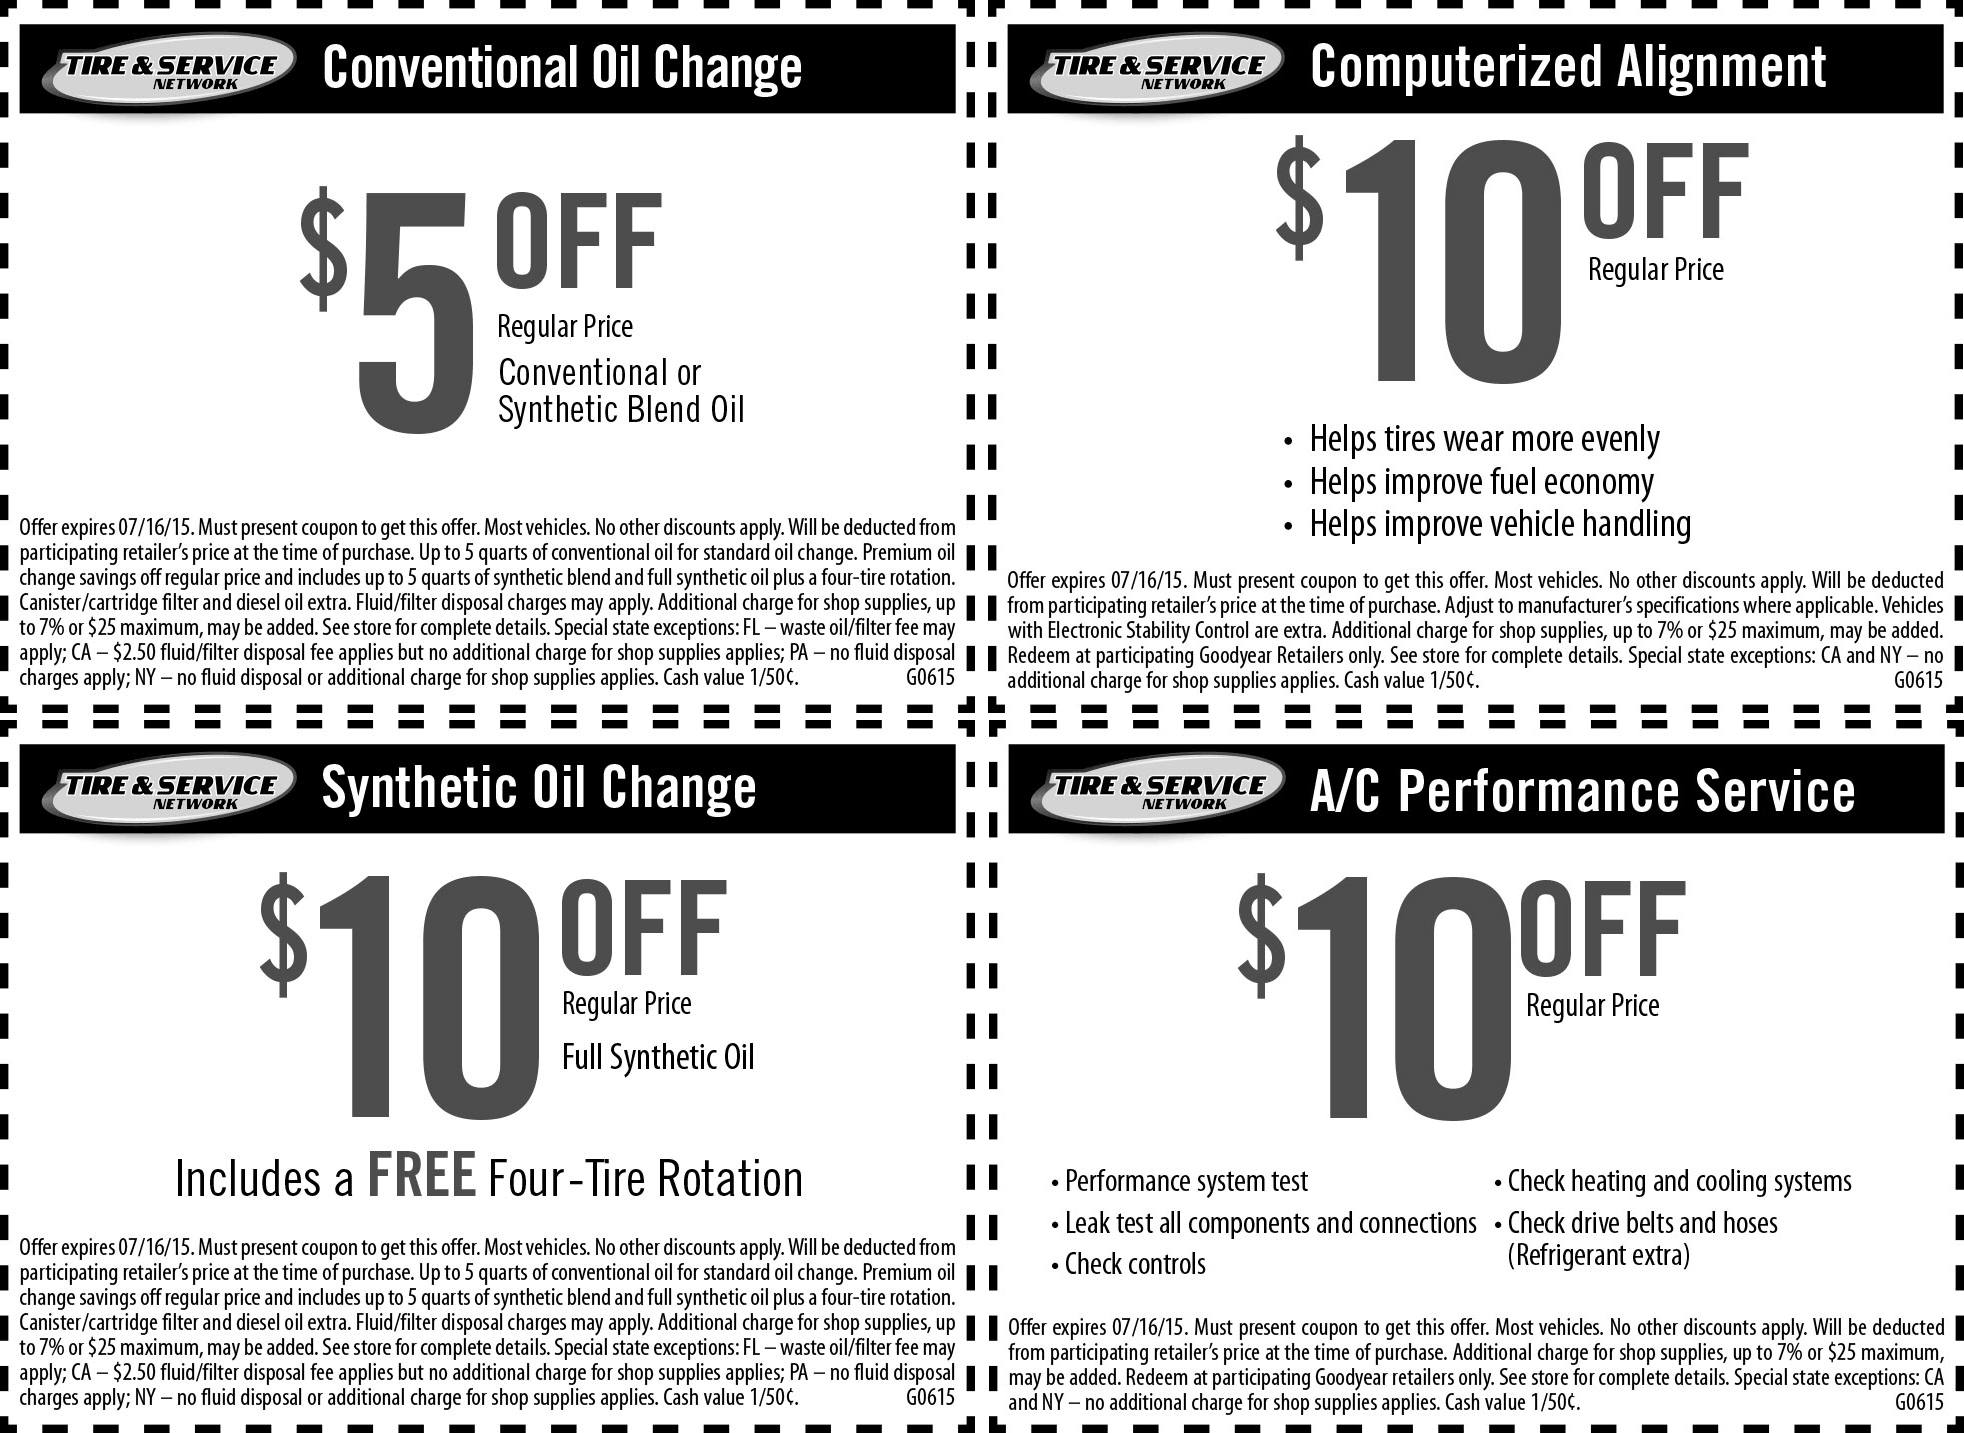 Goodyear Coupon November 2017 $5-$10 off an oil change, alignment & more at Goodyear